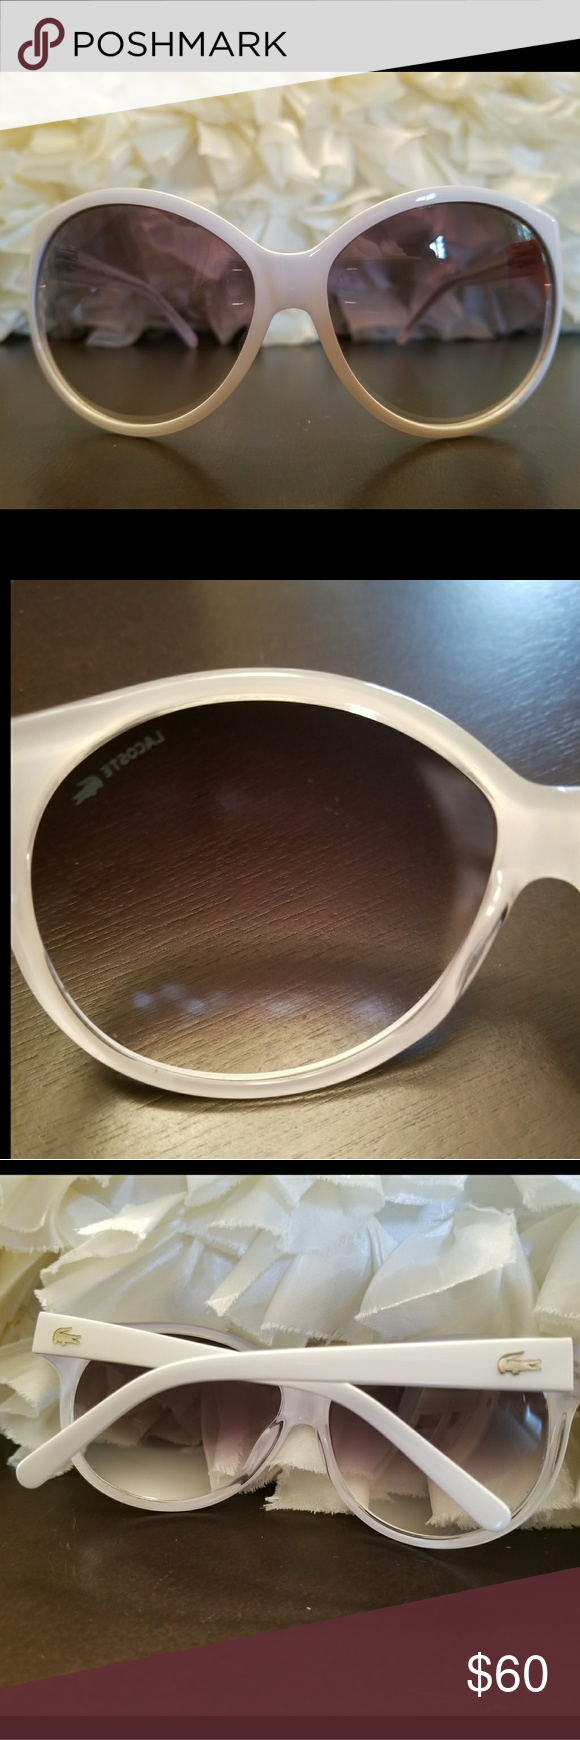 bdbd99f2b8 Authentic Lacoste Shades